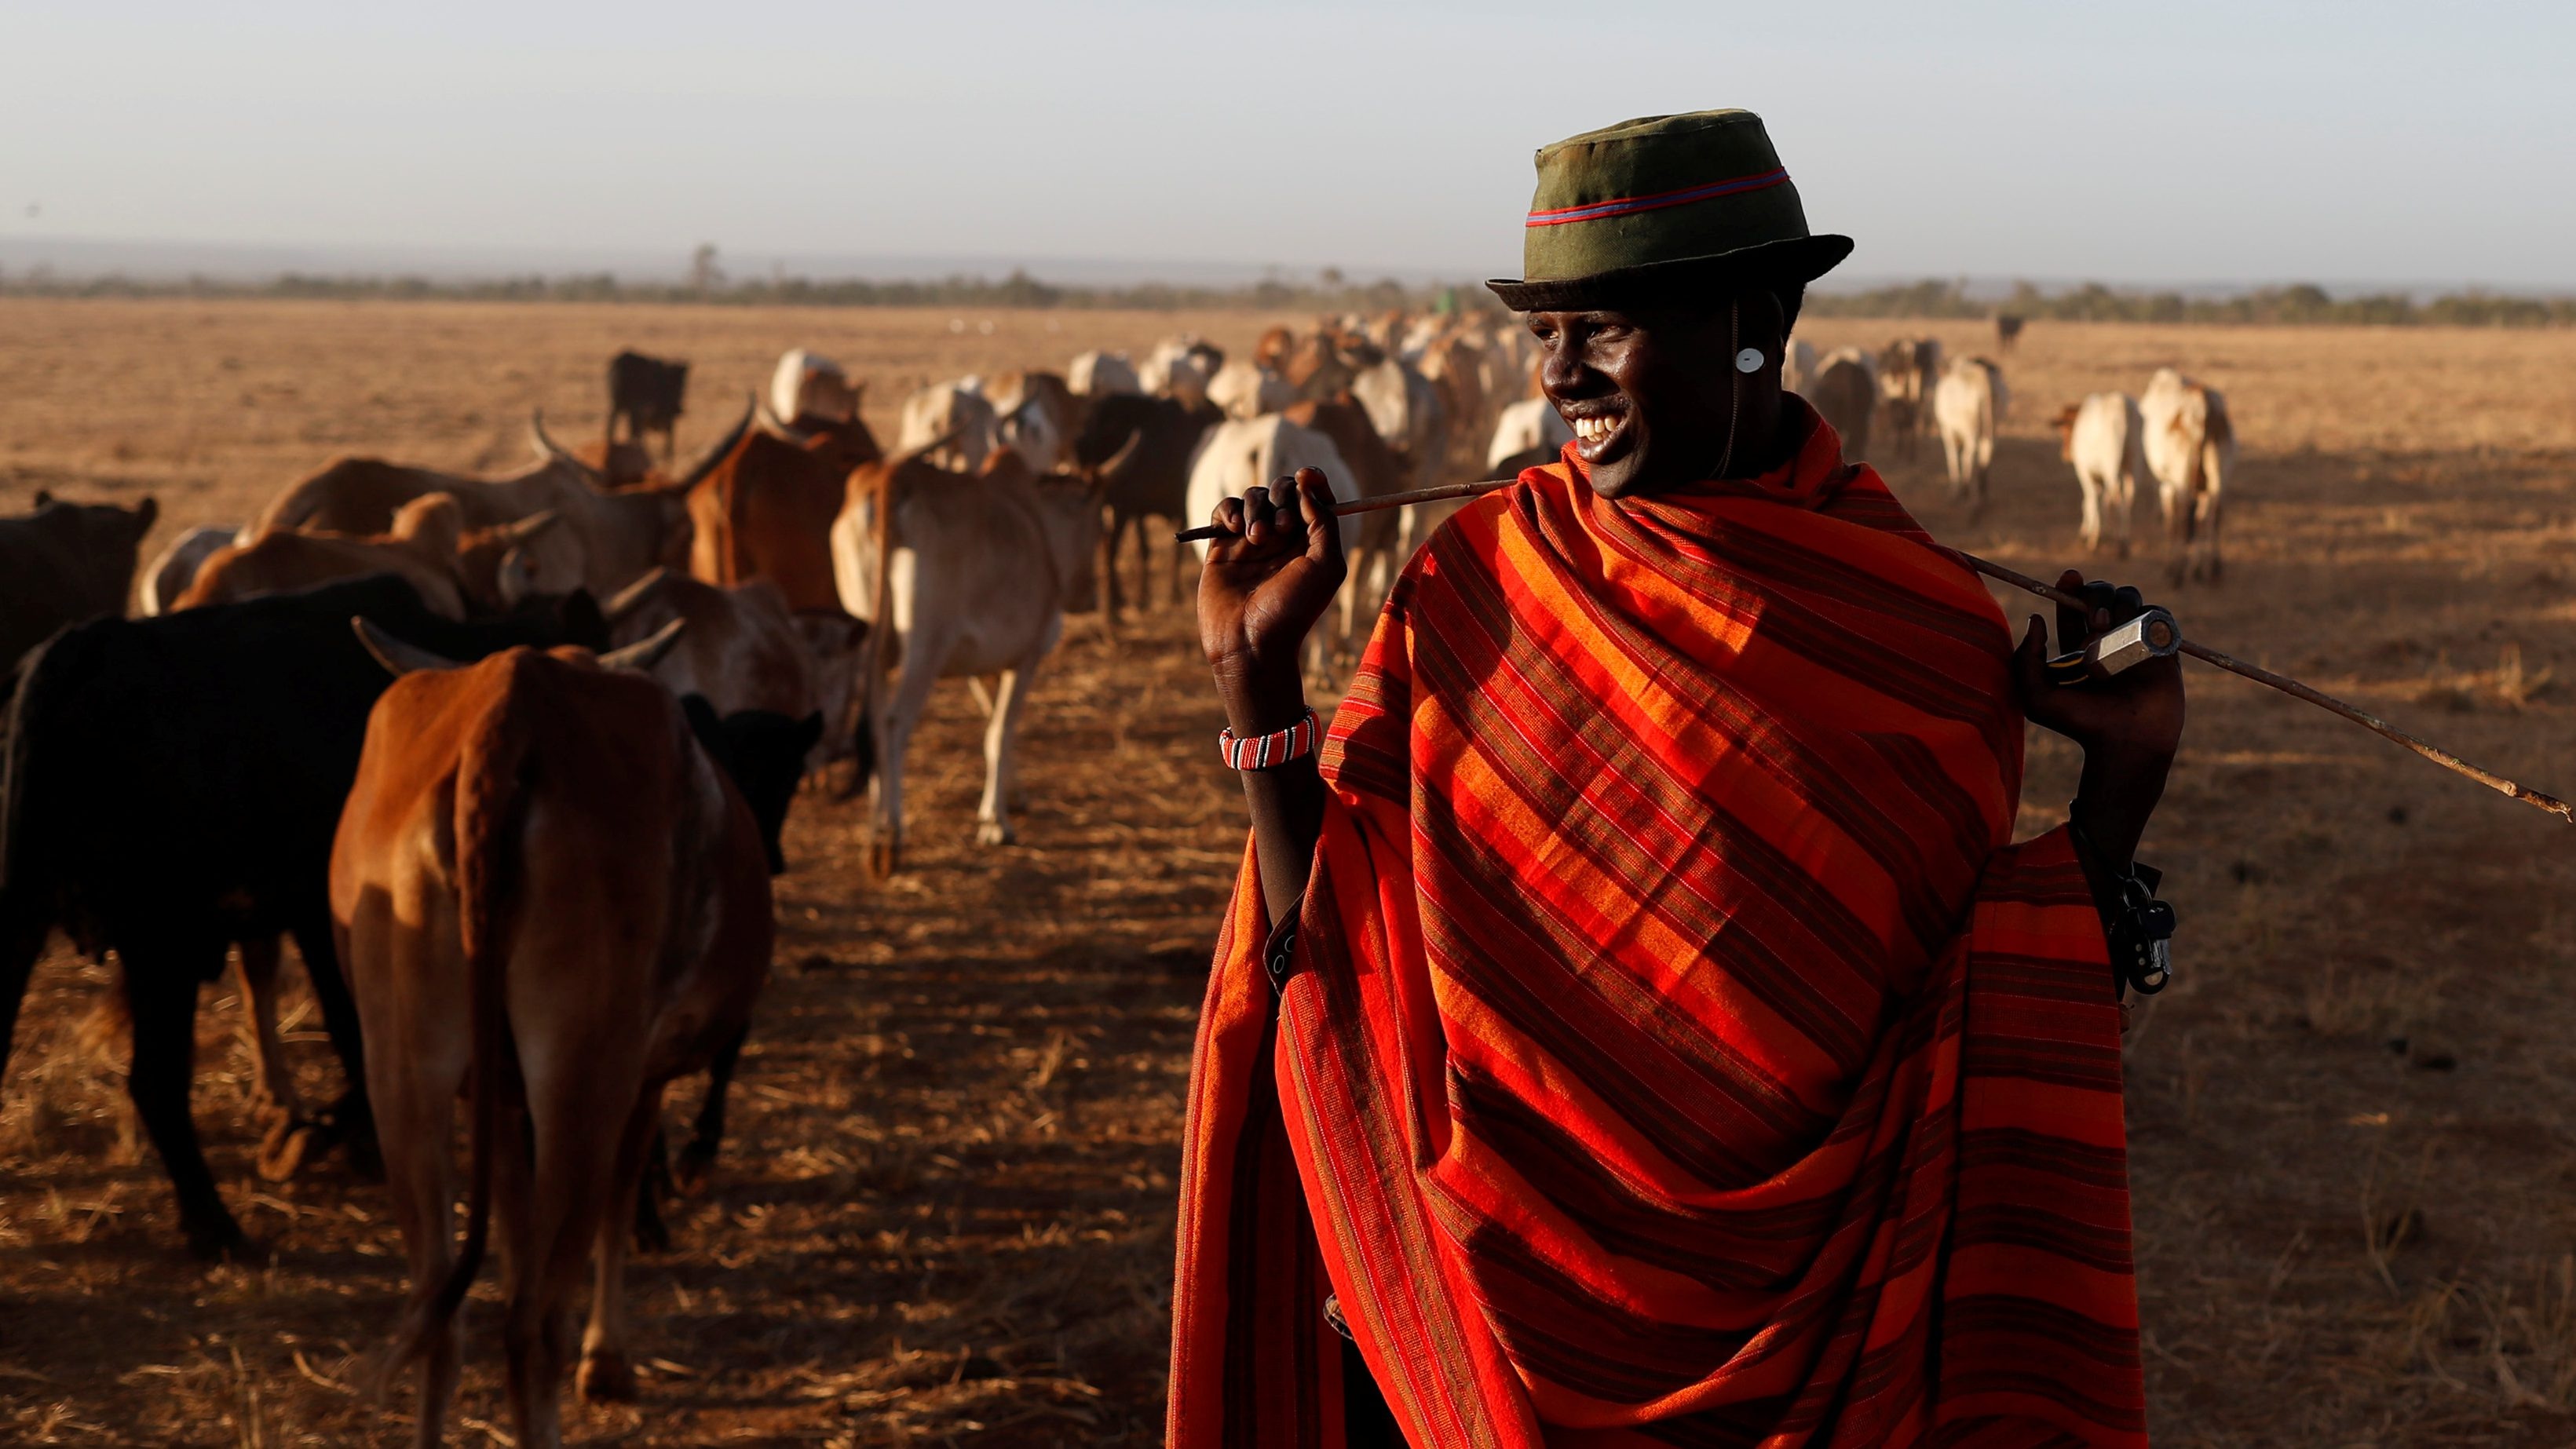 A Samburu tribesman stands behind cows as he enters the Mugui conservancy, Kenya February 11, 2017.